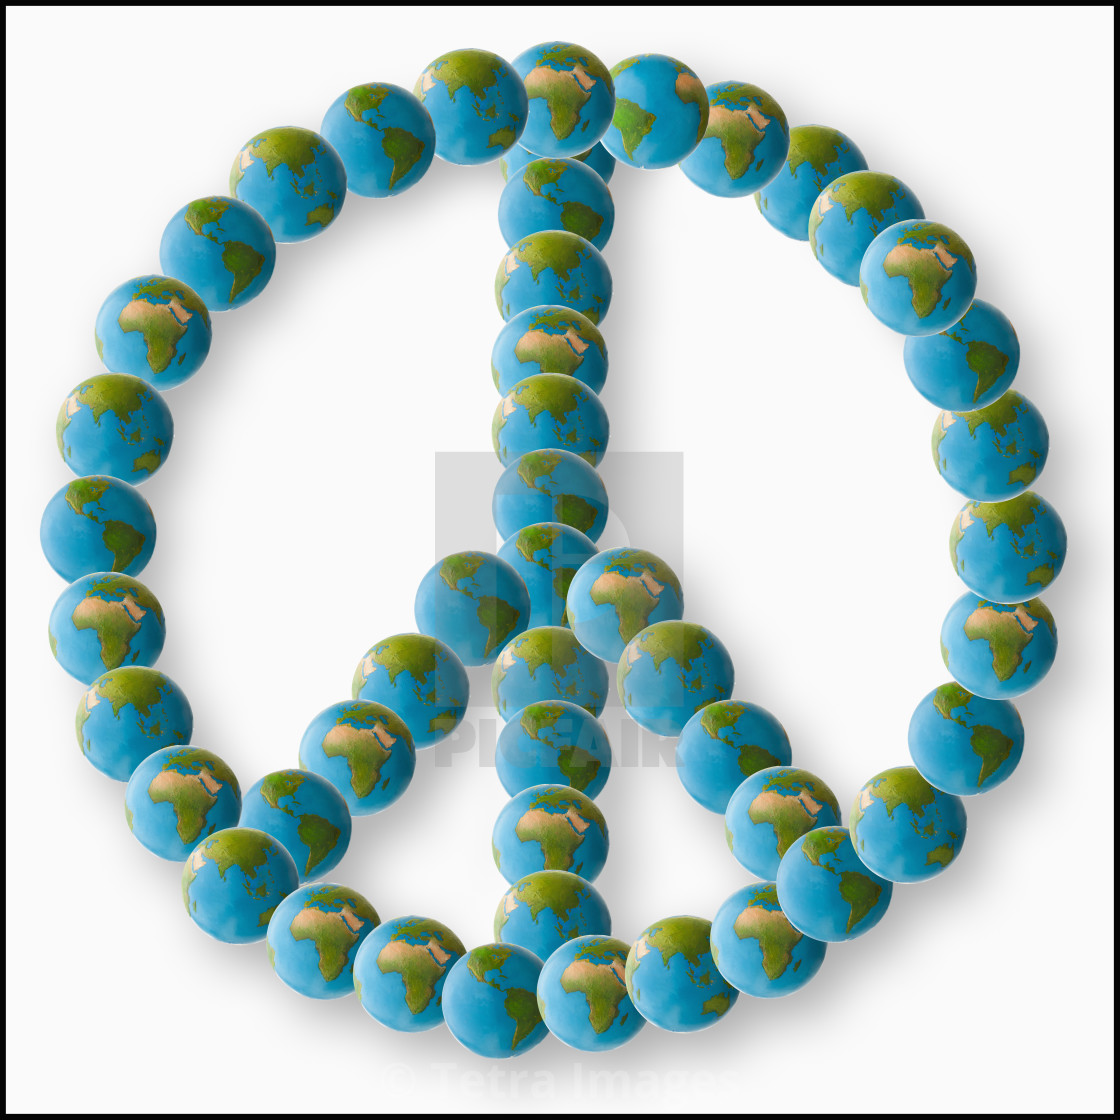 Studio Shot Of Peace Symbol Made Of Globes License For 3720 On